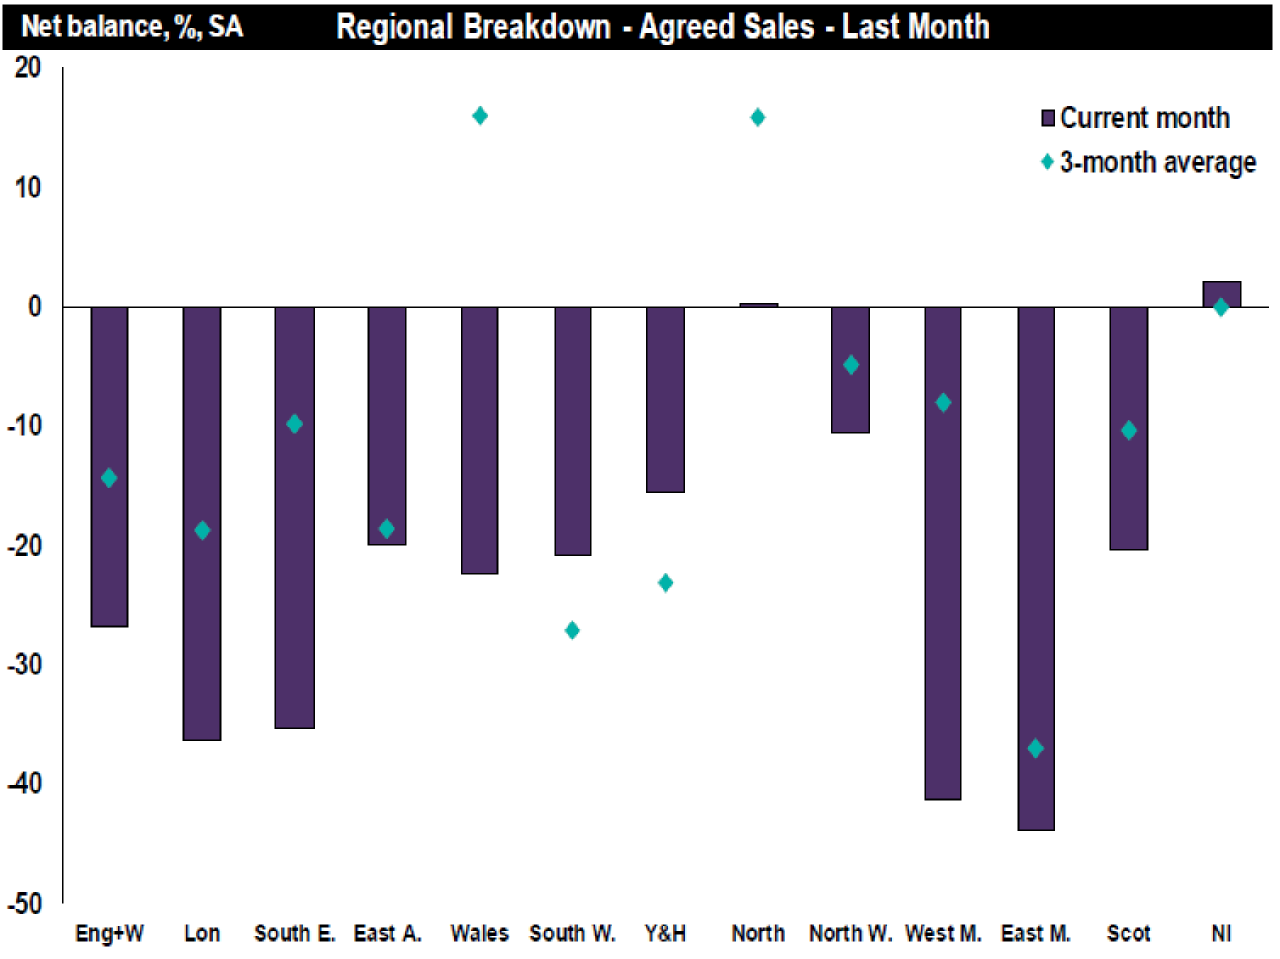 Buyers and sellers don't respond to continued uncertainty - residential market survey